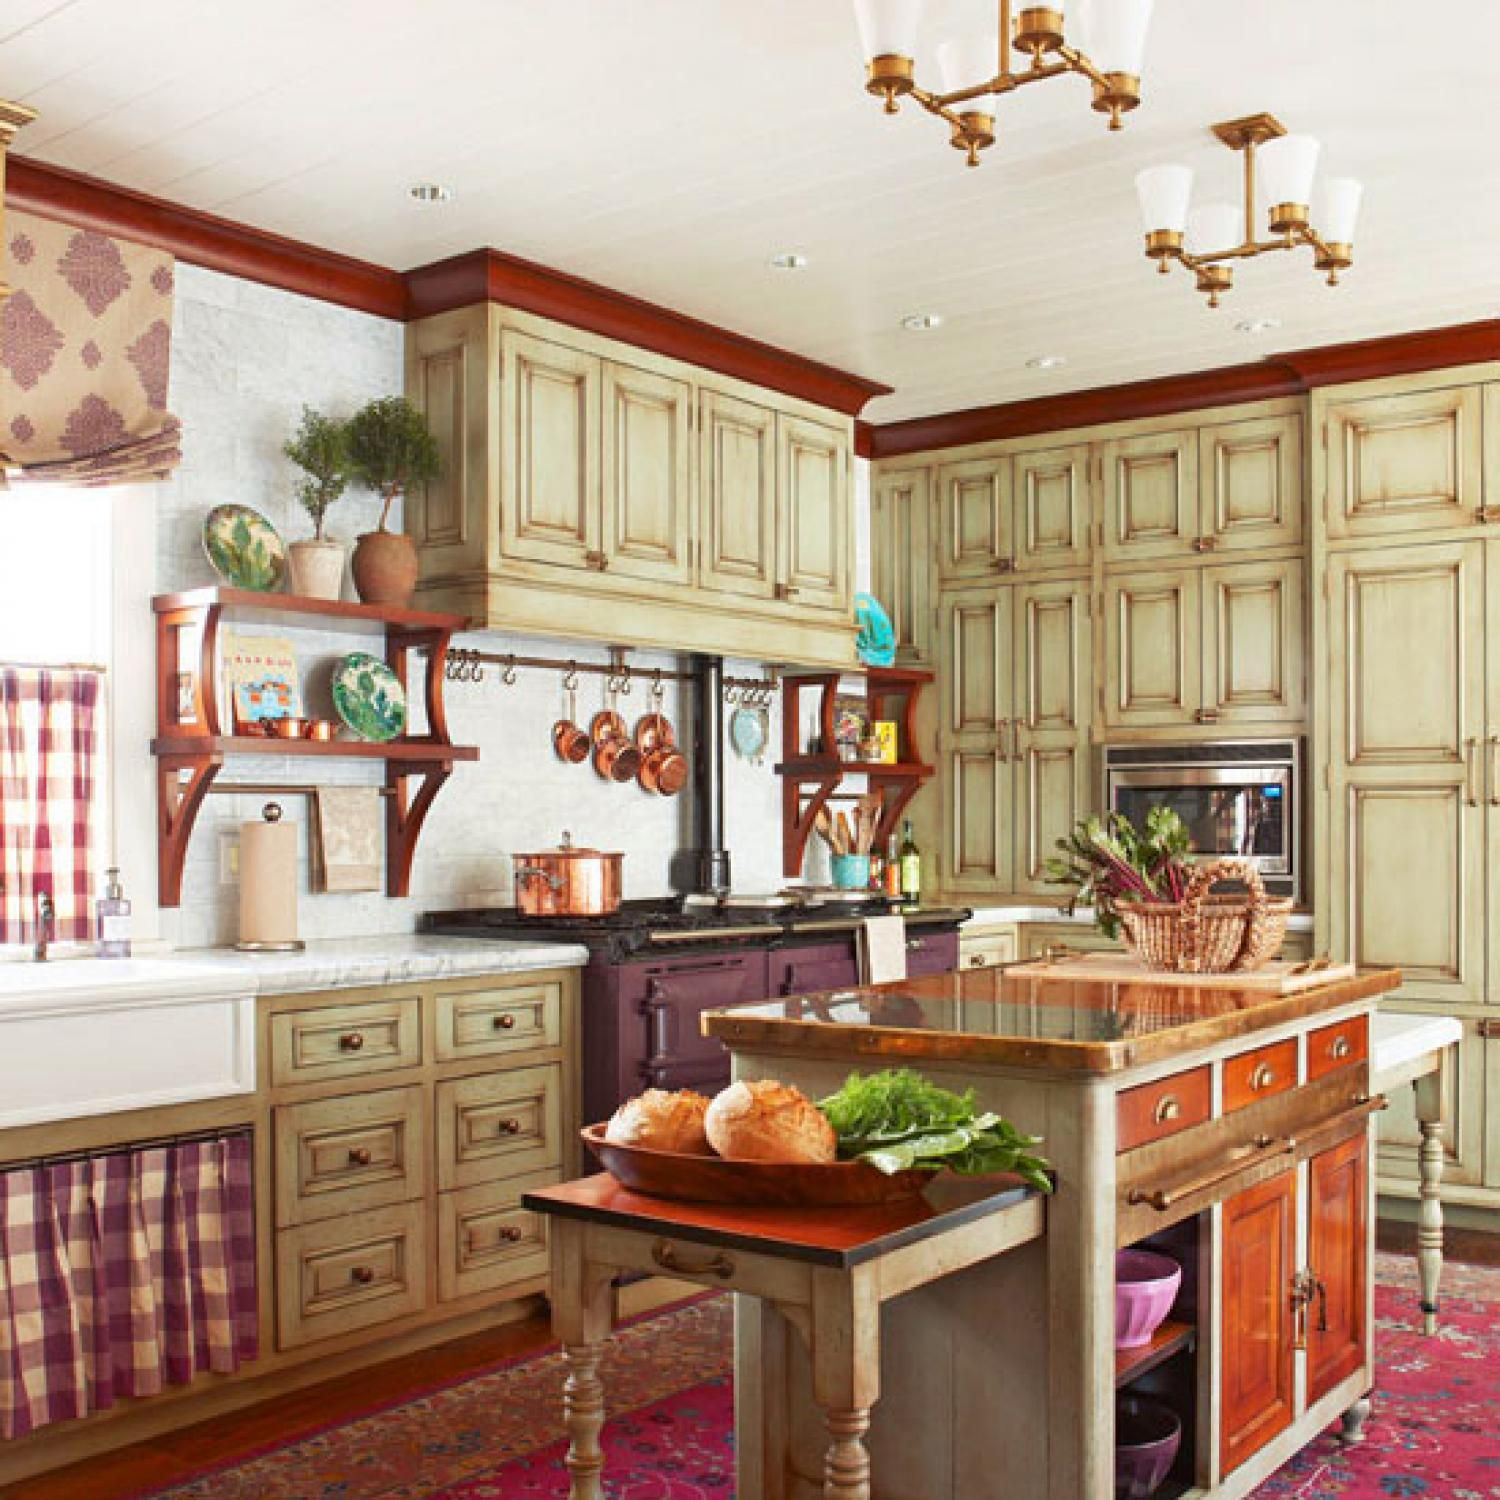 Cozy Kitchen: Cozy Kitchen With Warm Colors